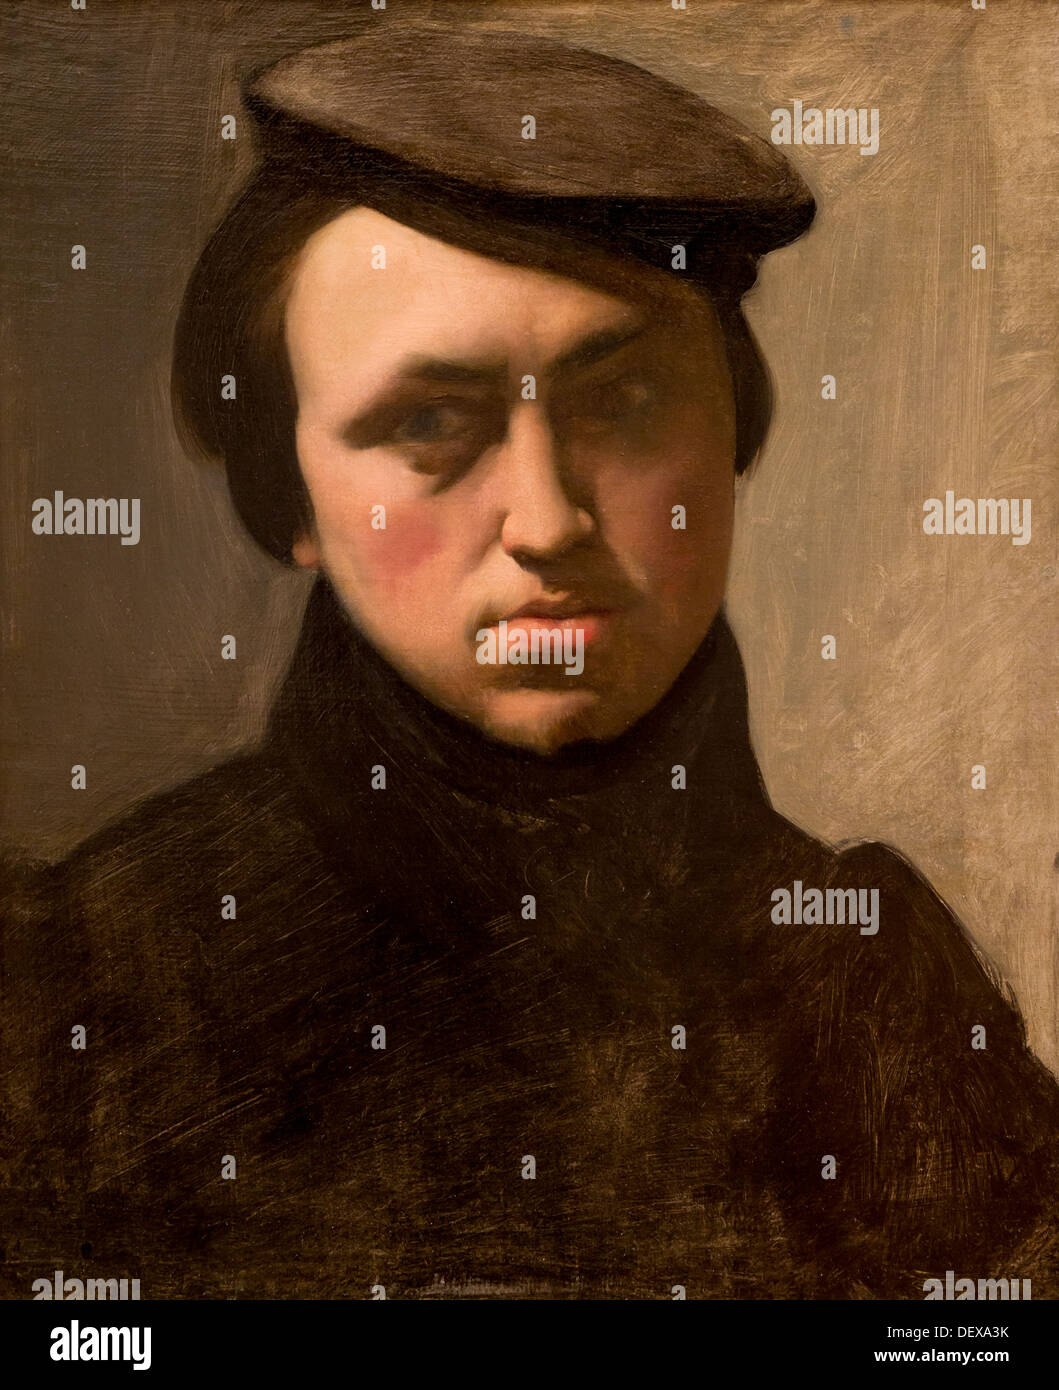 19th century  -  Self-portrait of youth with a cap, around 1835 - Hippolyte Flandrin oil on canvas - Stock Image